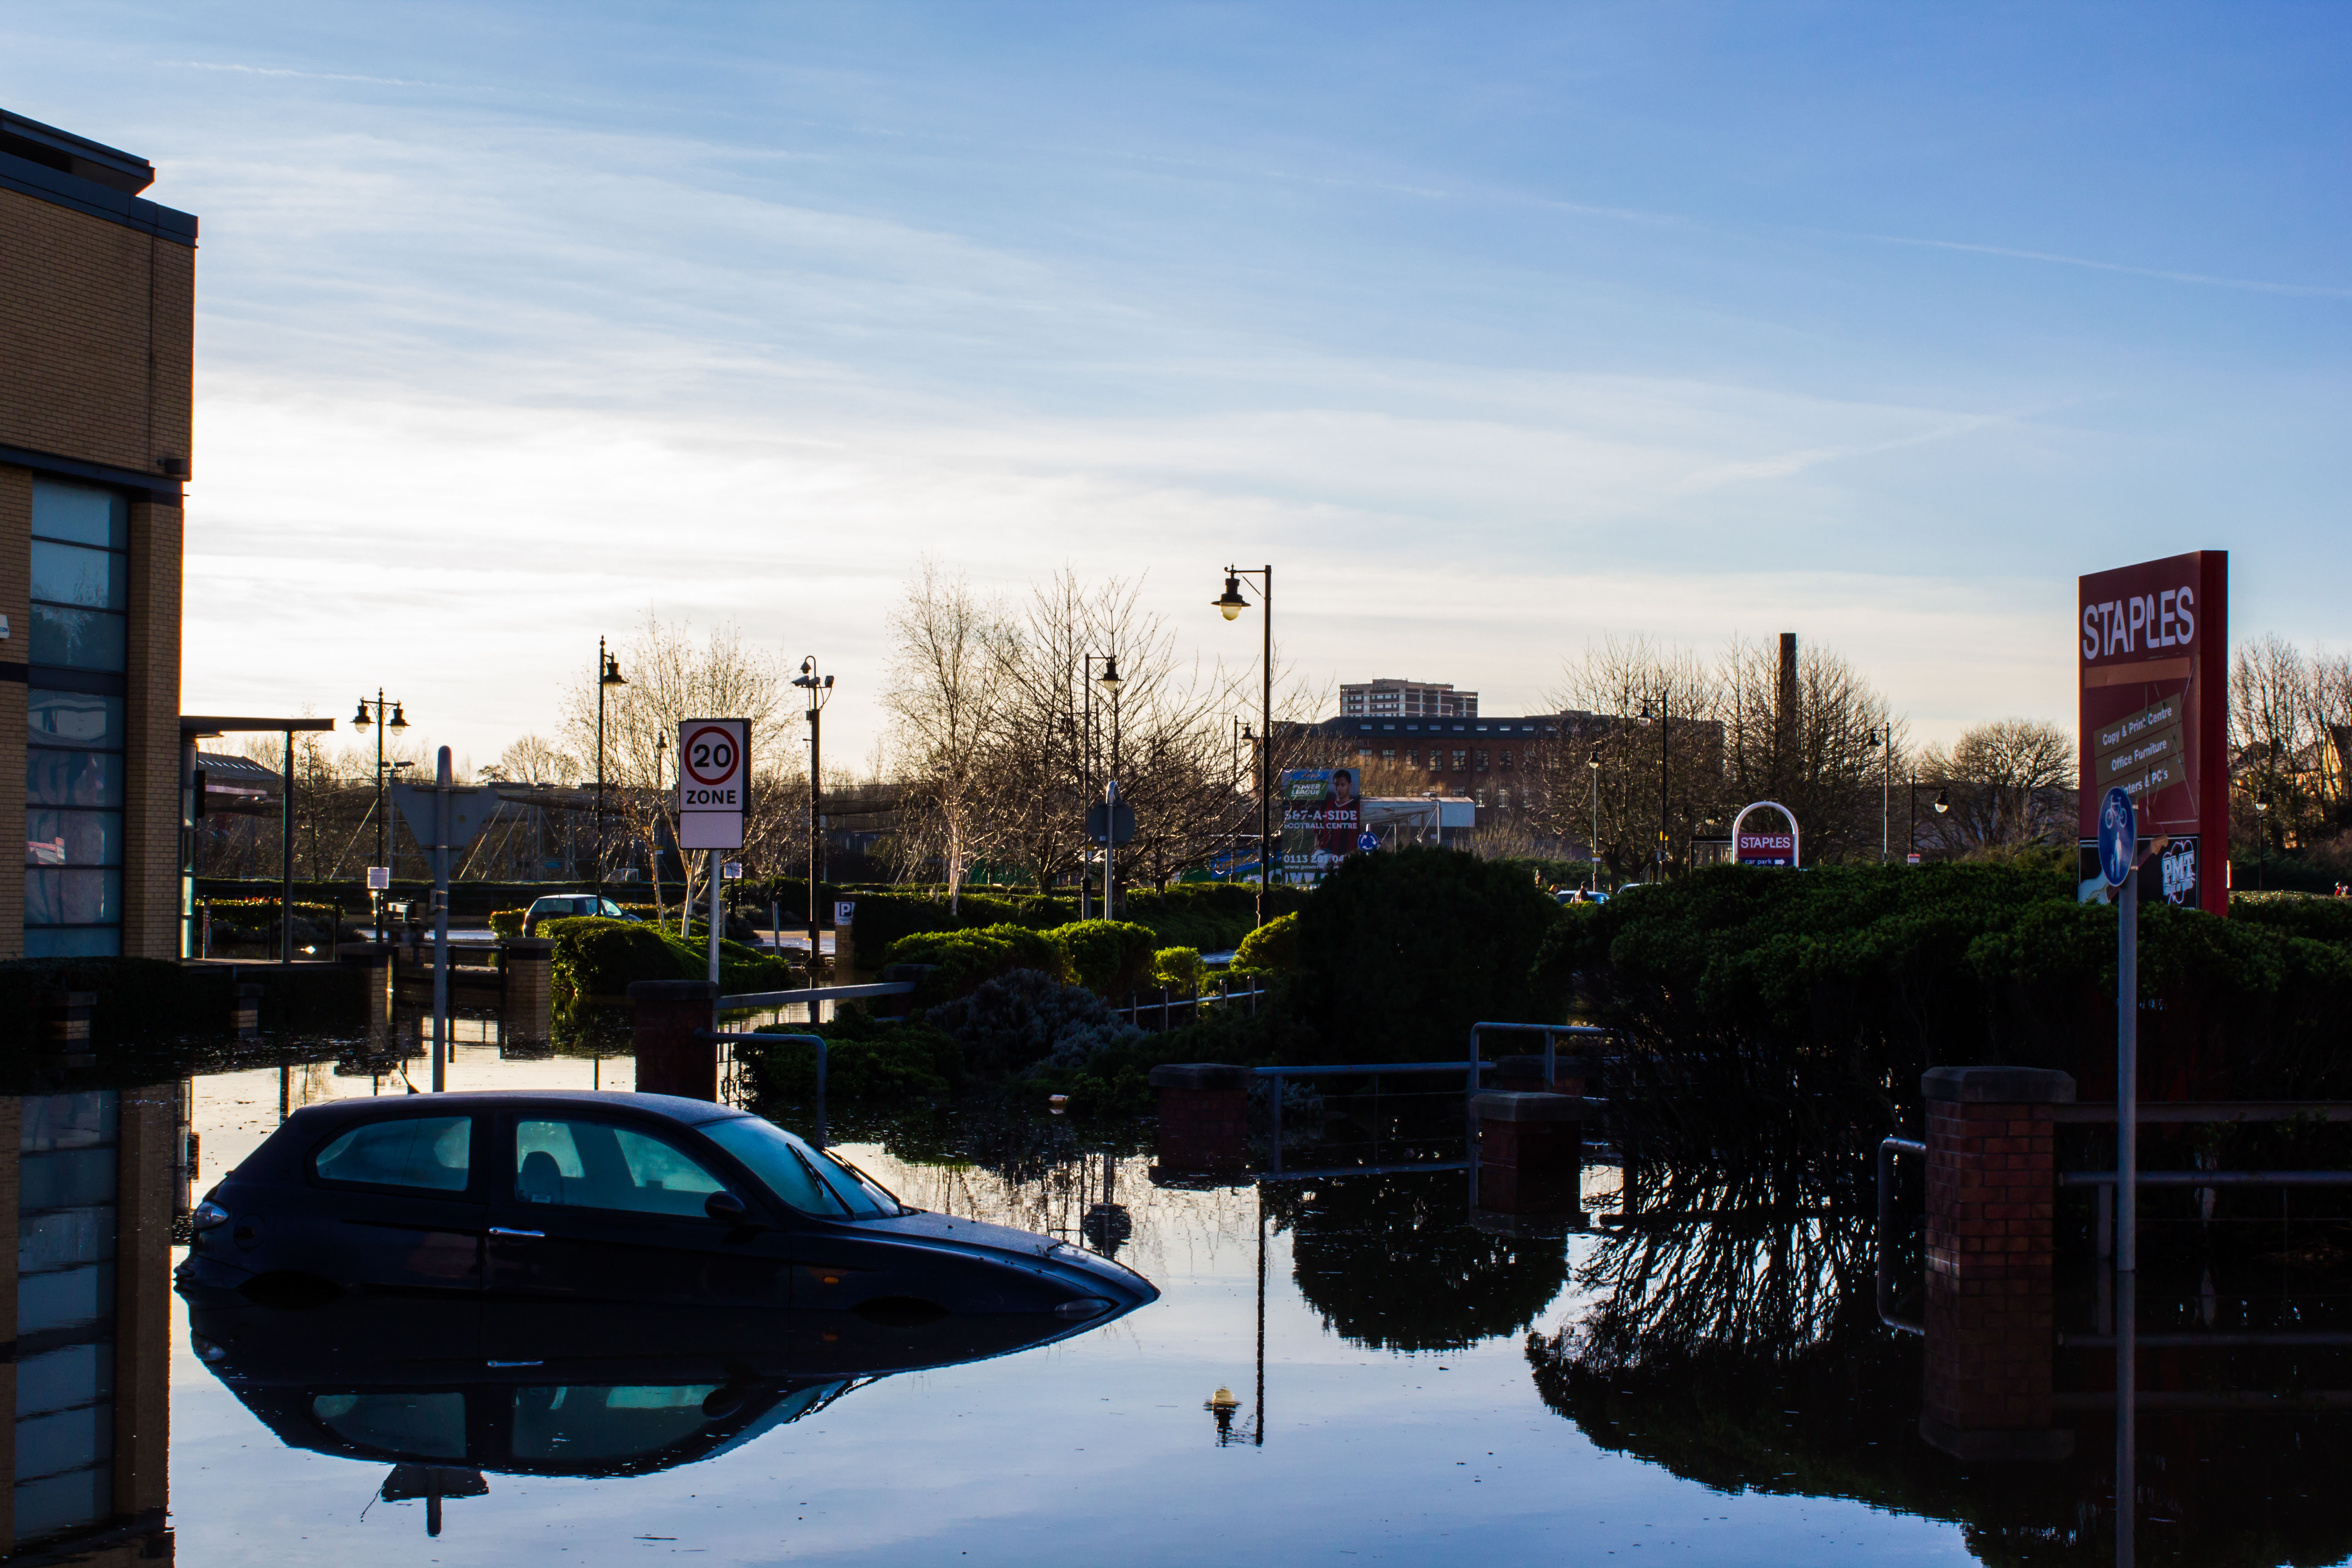 Photograph showing  a half submerged car in a shoppers car park.  The water has come over the top of the car bonnet.